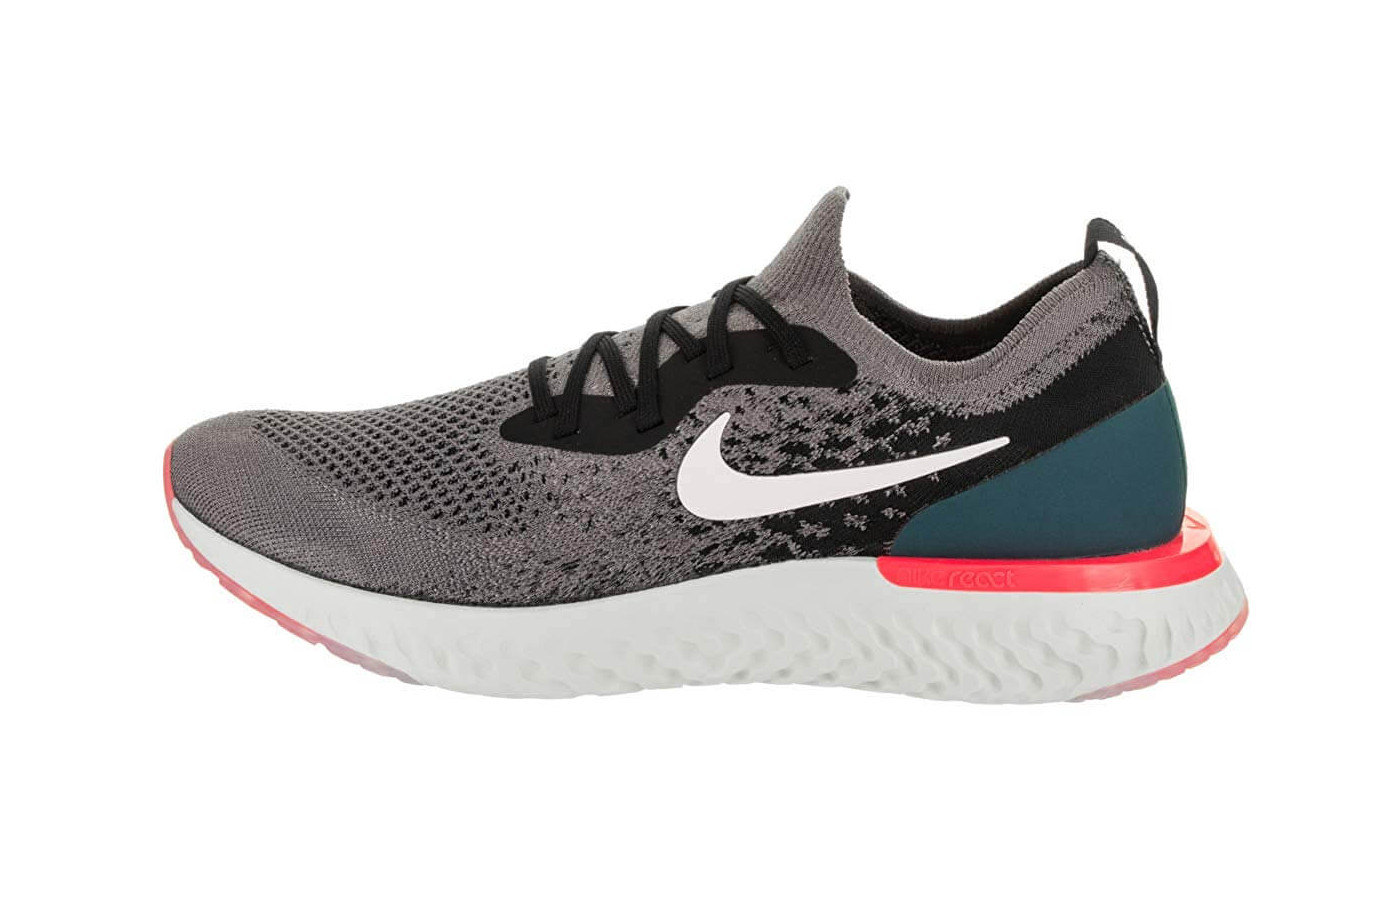 Nike Epic React Flyknit GS Nike Epic React Flyknit Review 2020 | RunnerClick